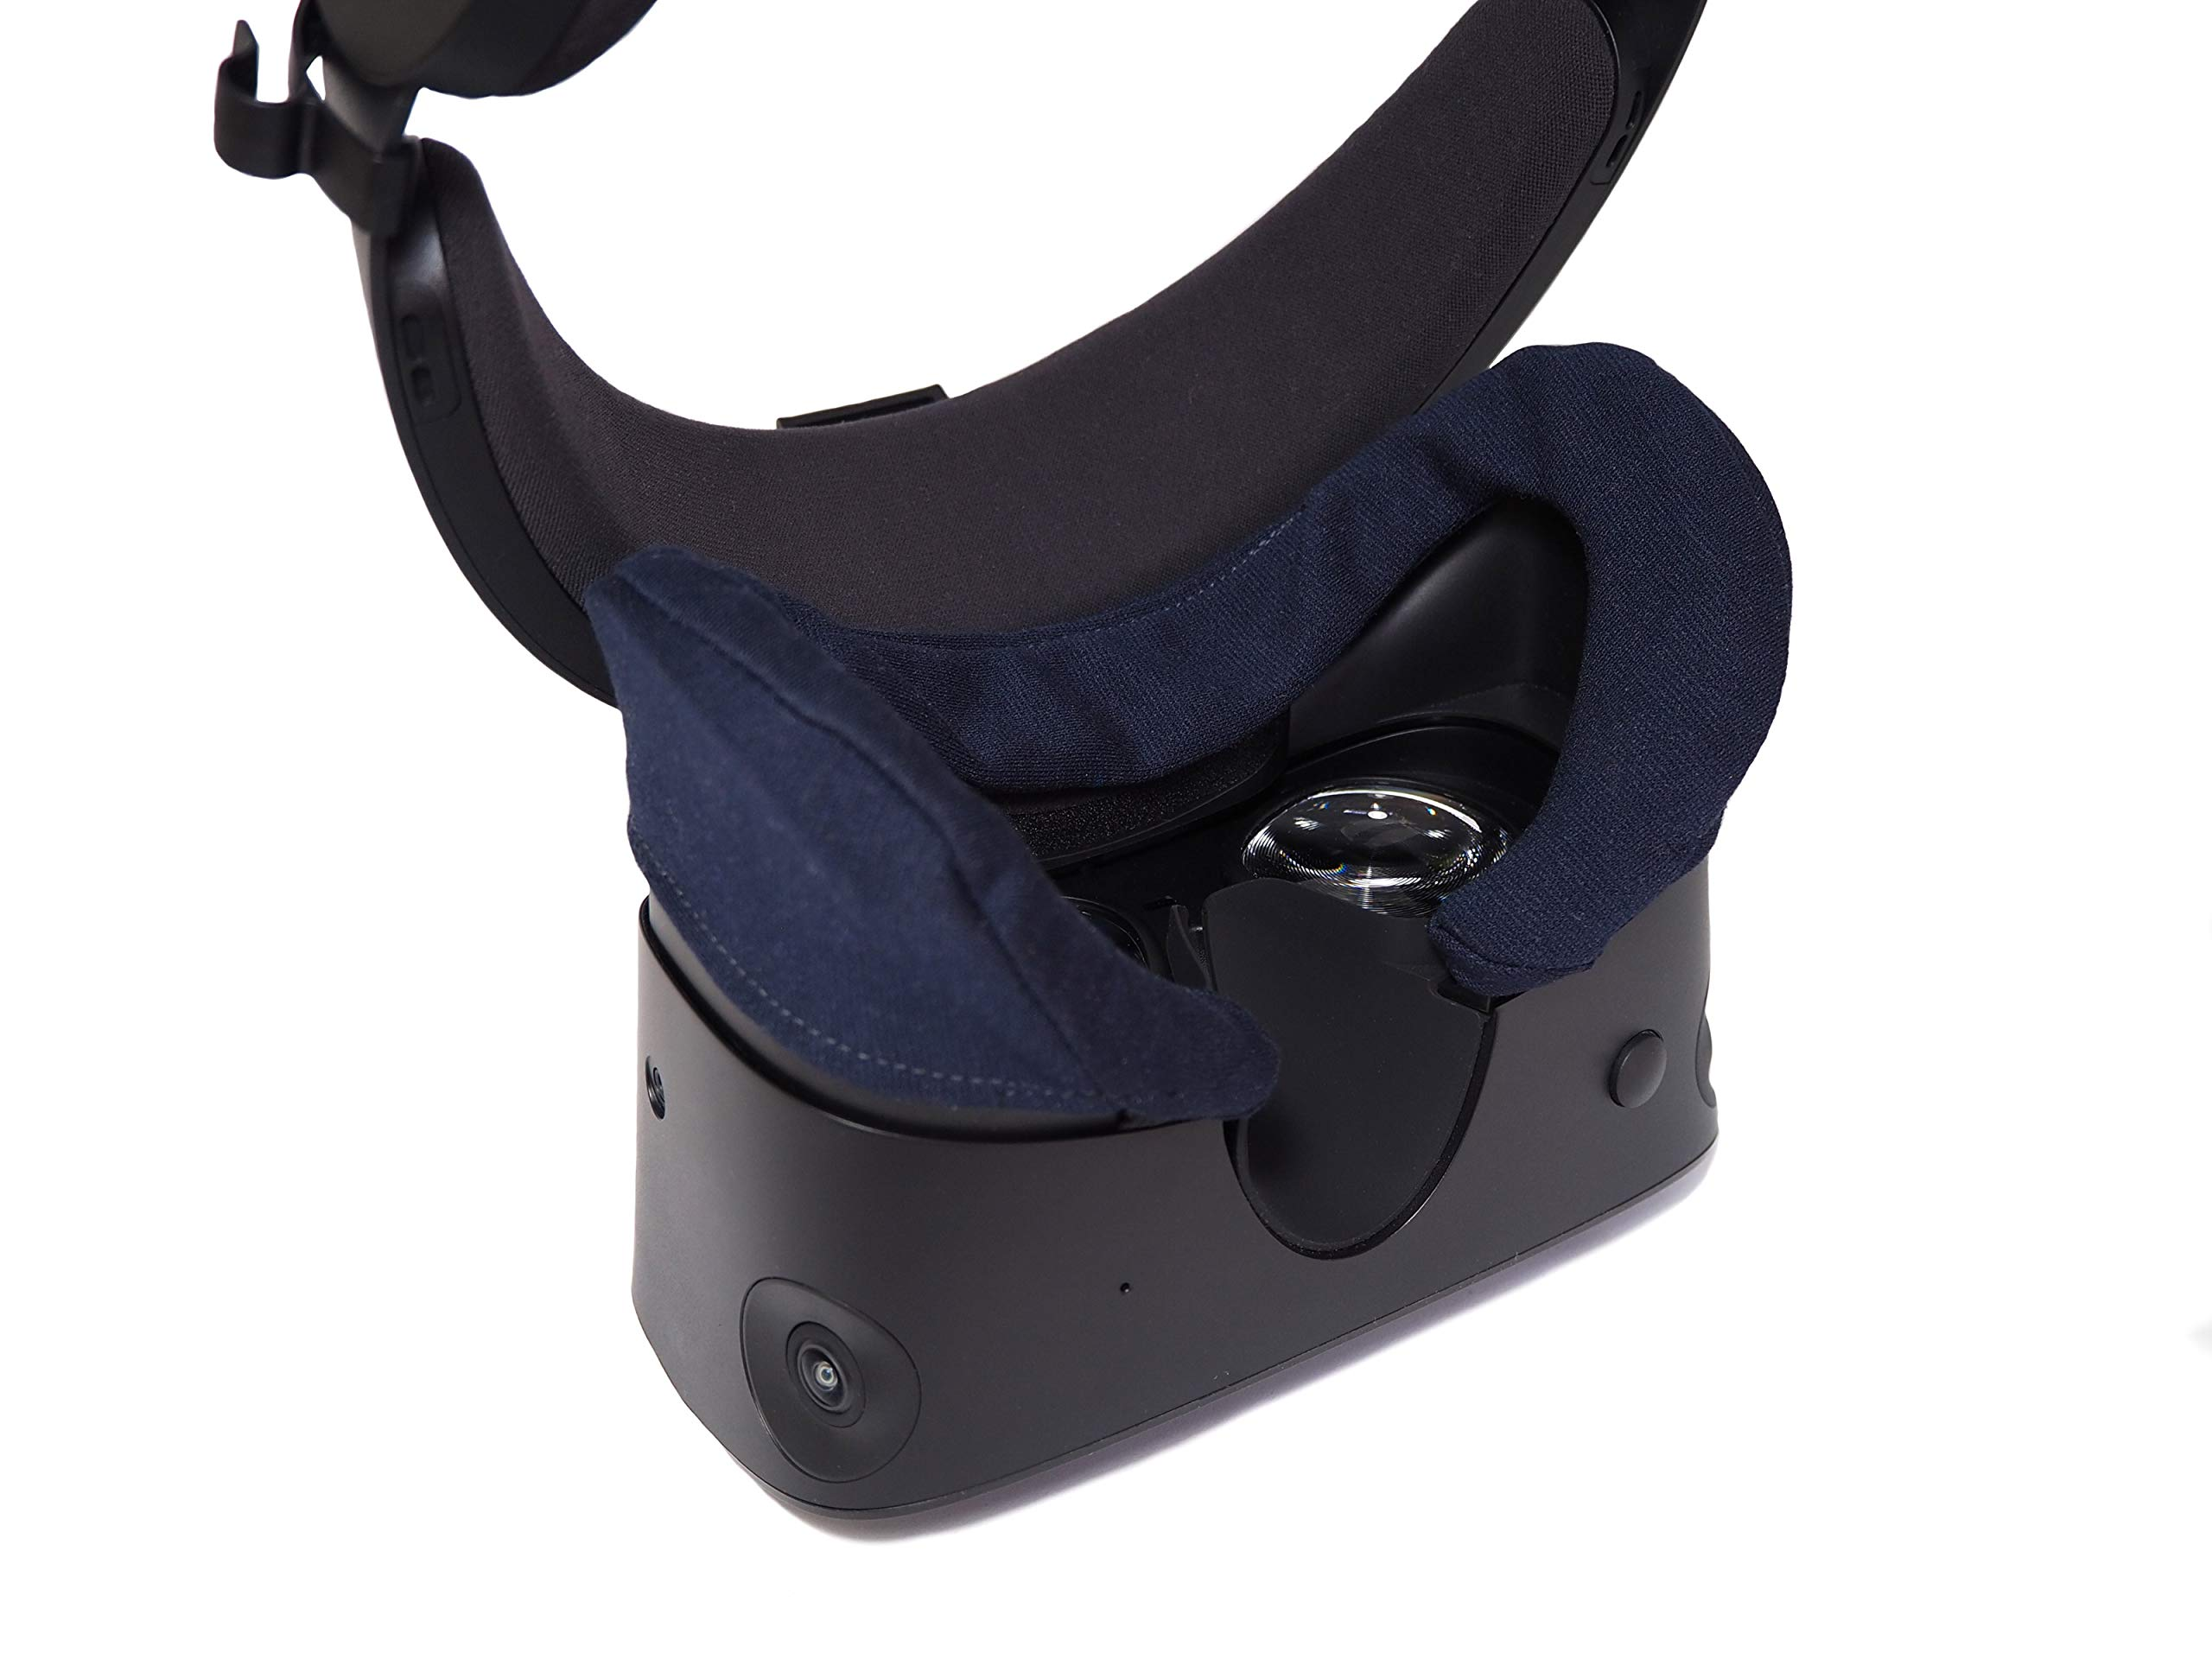 Fabric Cover for Oculus Rift S (Sweat Absorbent - Quick Drying) by Akakawa